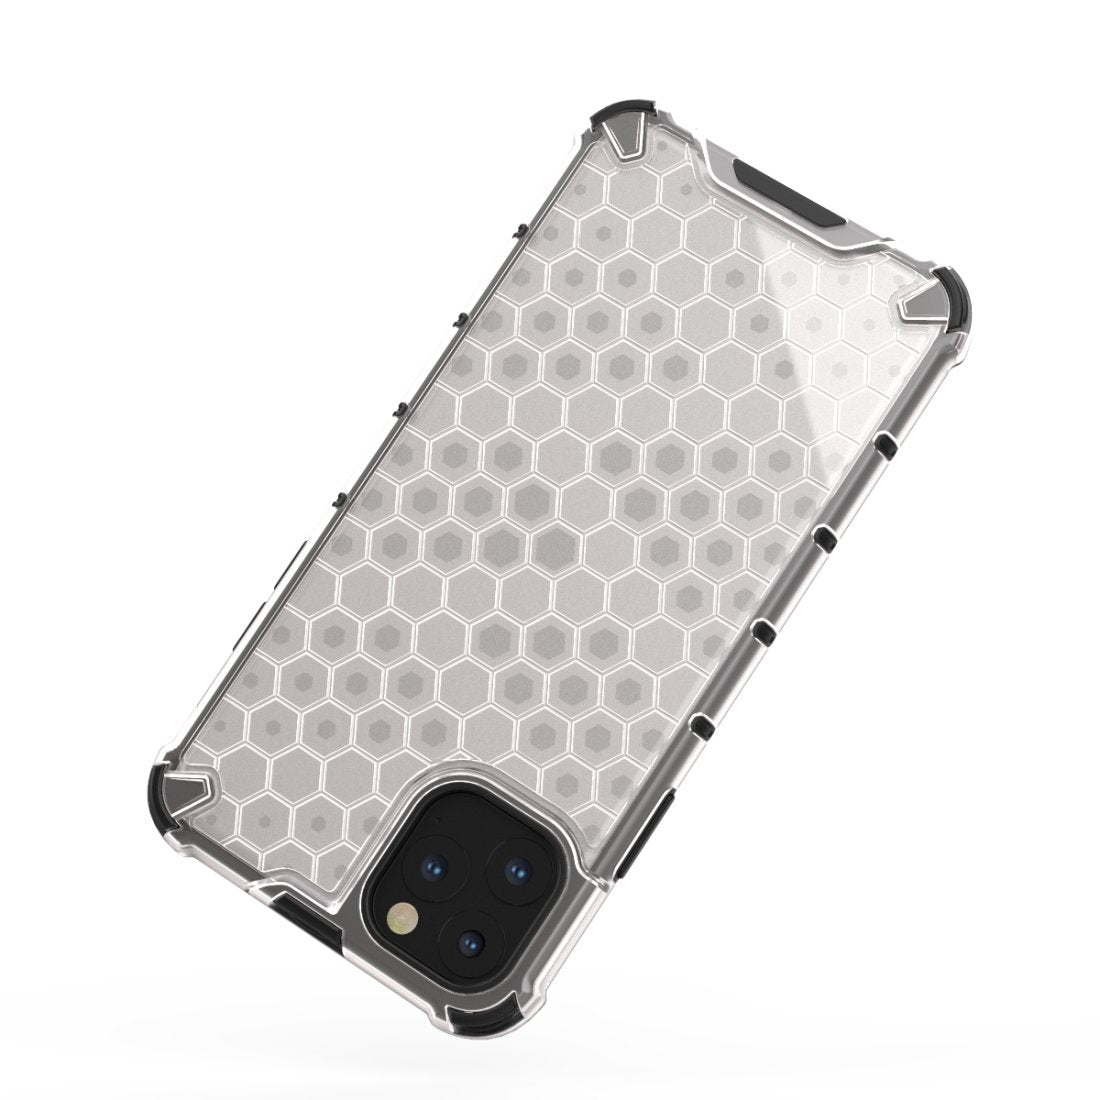 AMZER Honeycomb SlimGrip Hybrid Bumper Case for iPhone 11 Pro Max